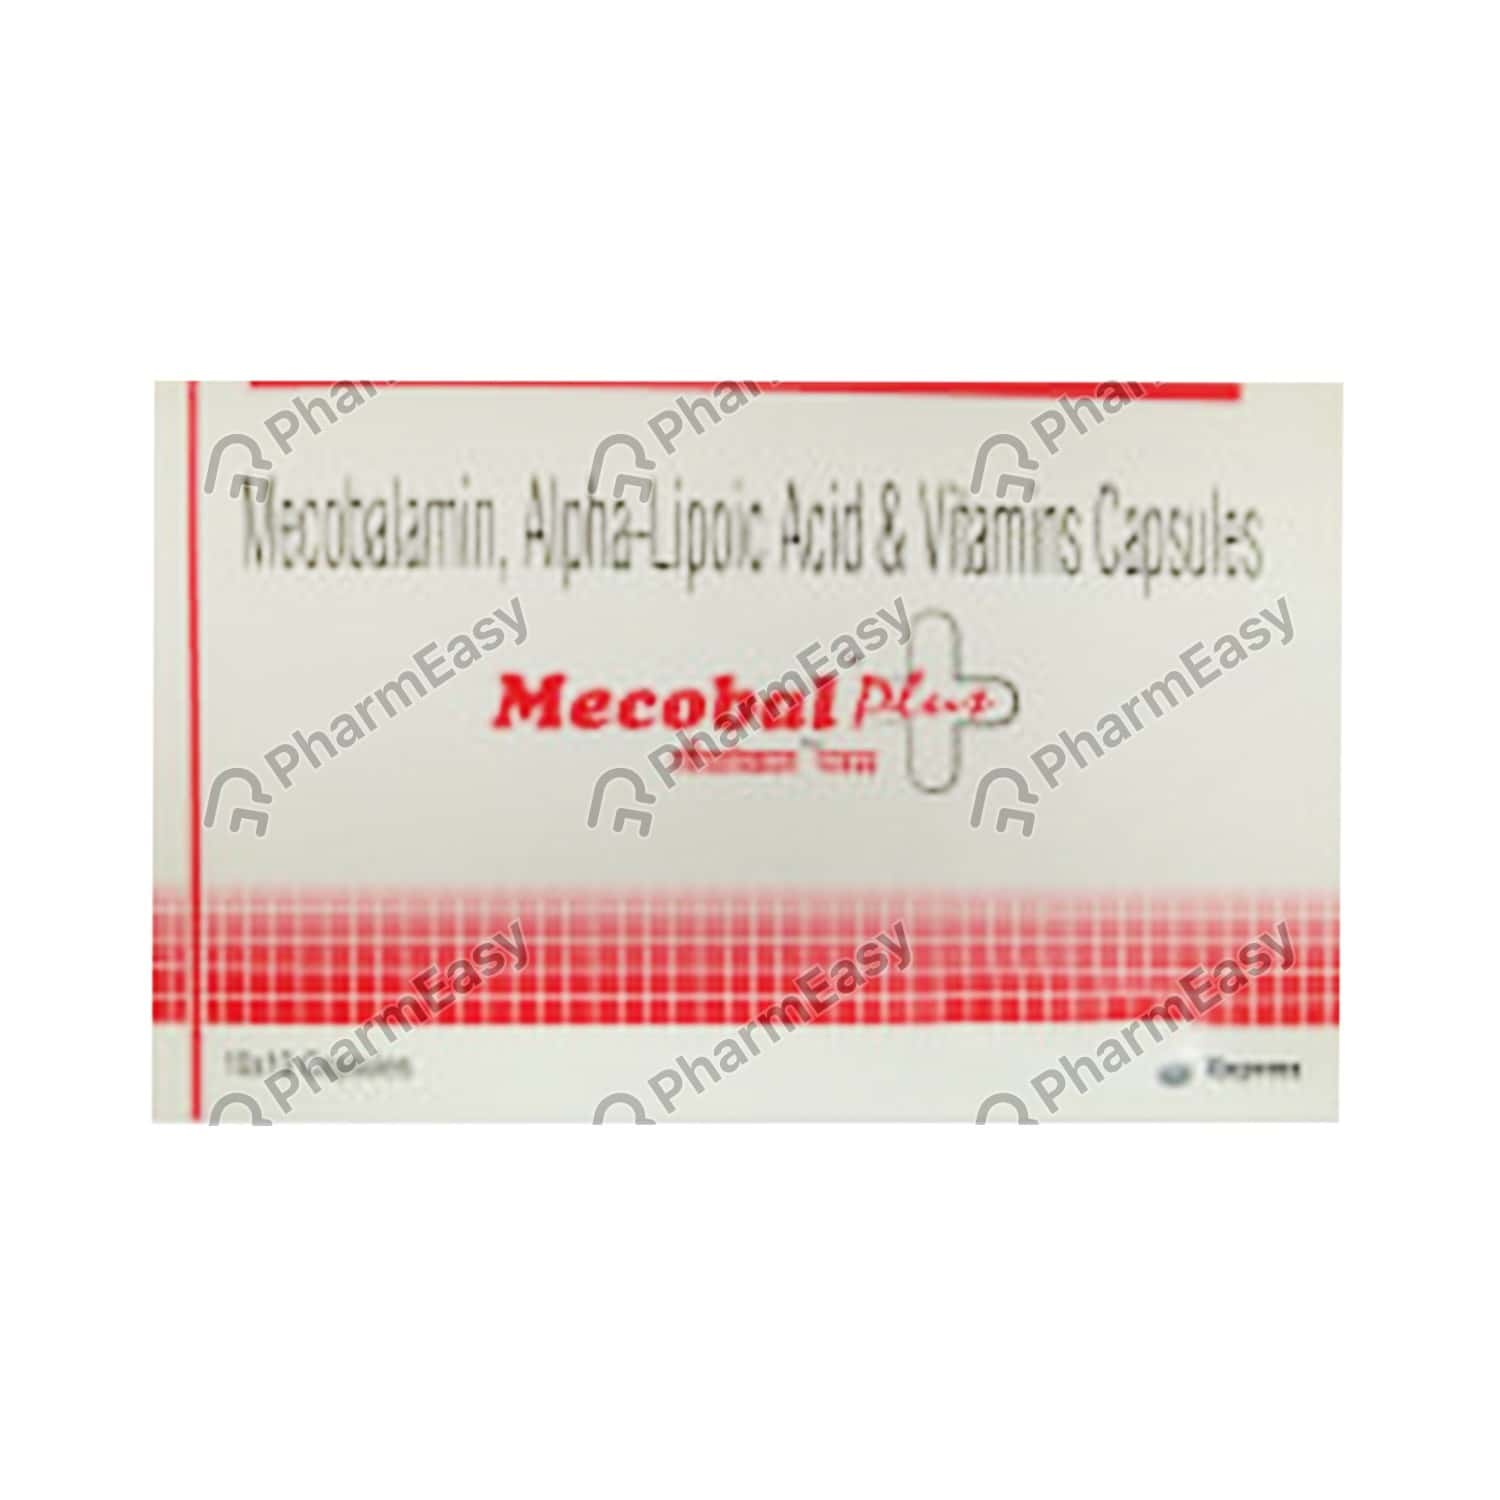 Mecobal Plus 1.5 Mg Tablet 10